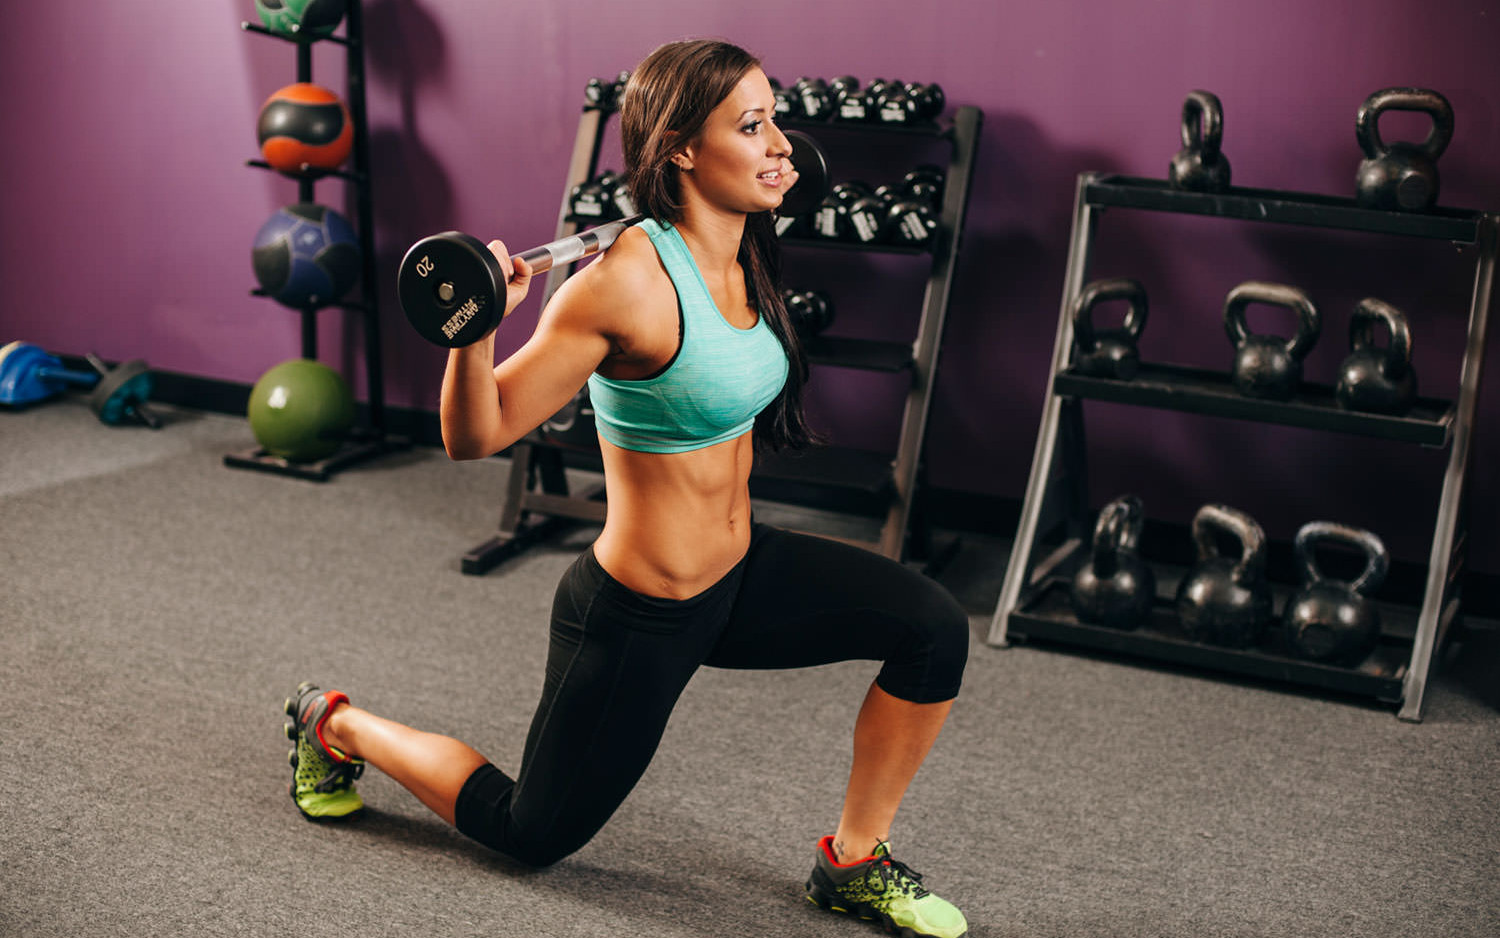 Exercise squats